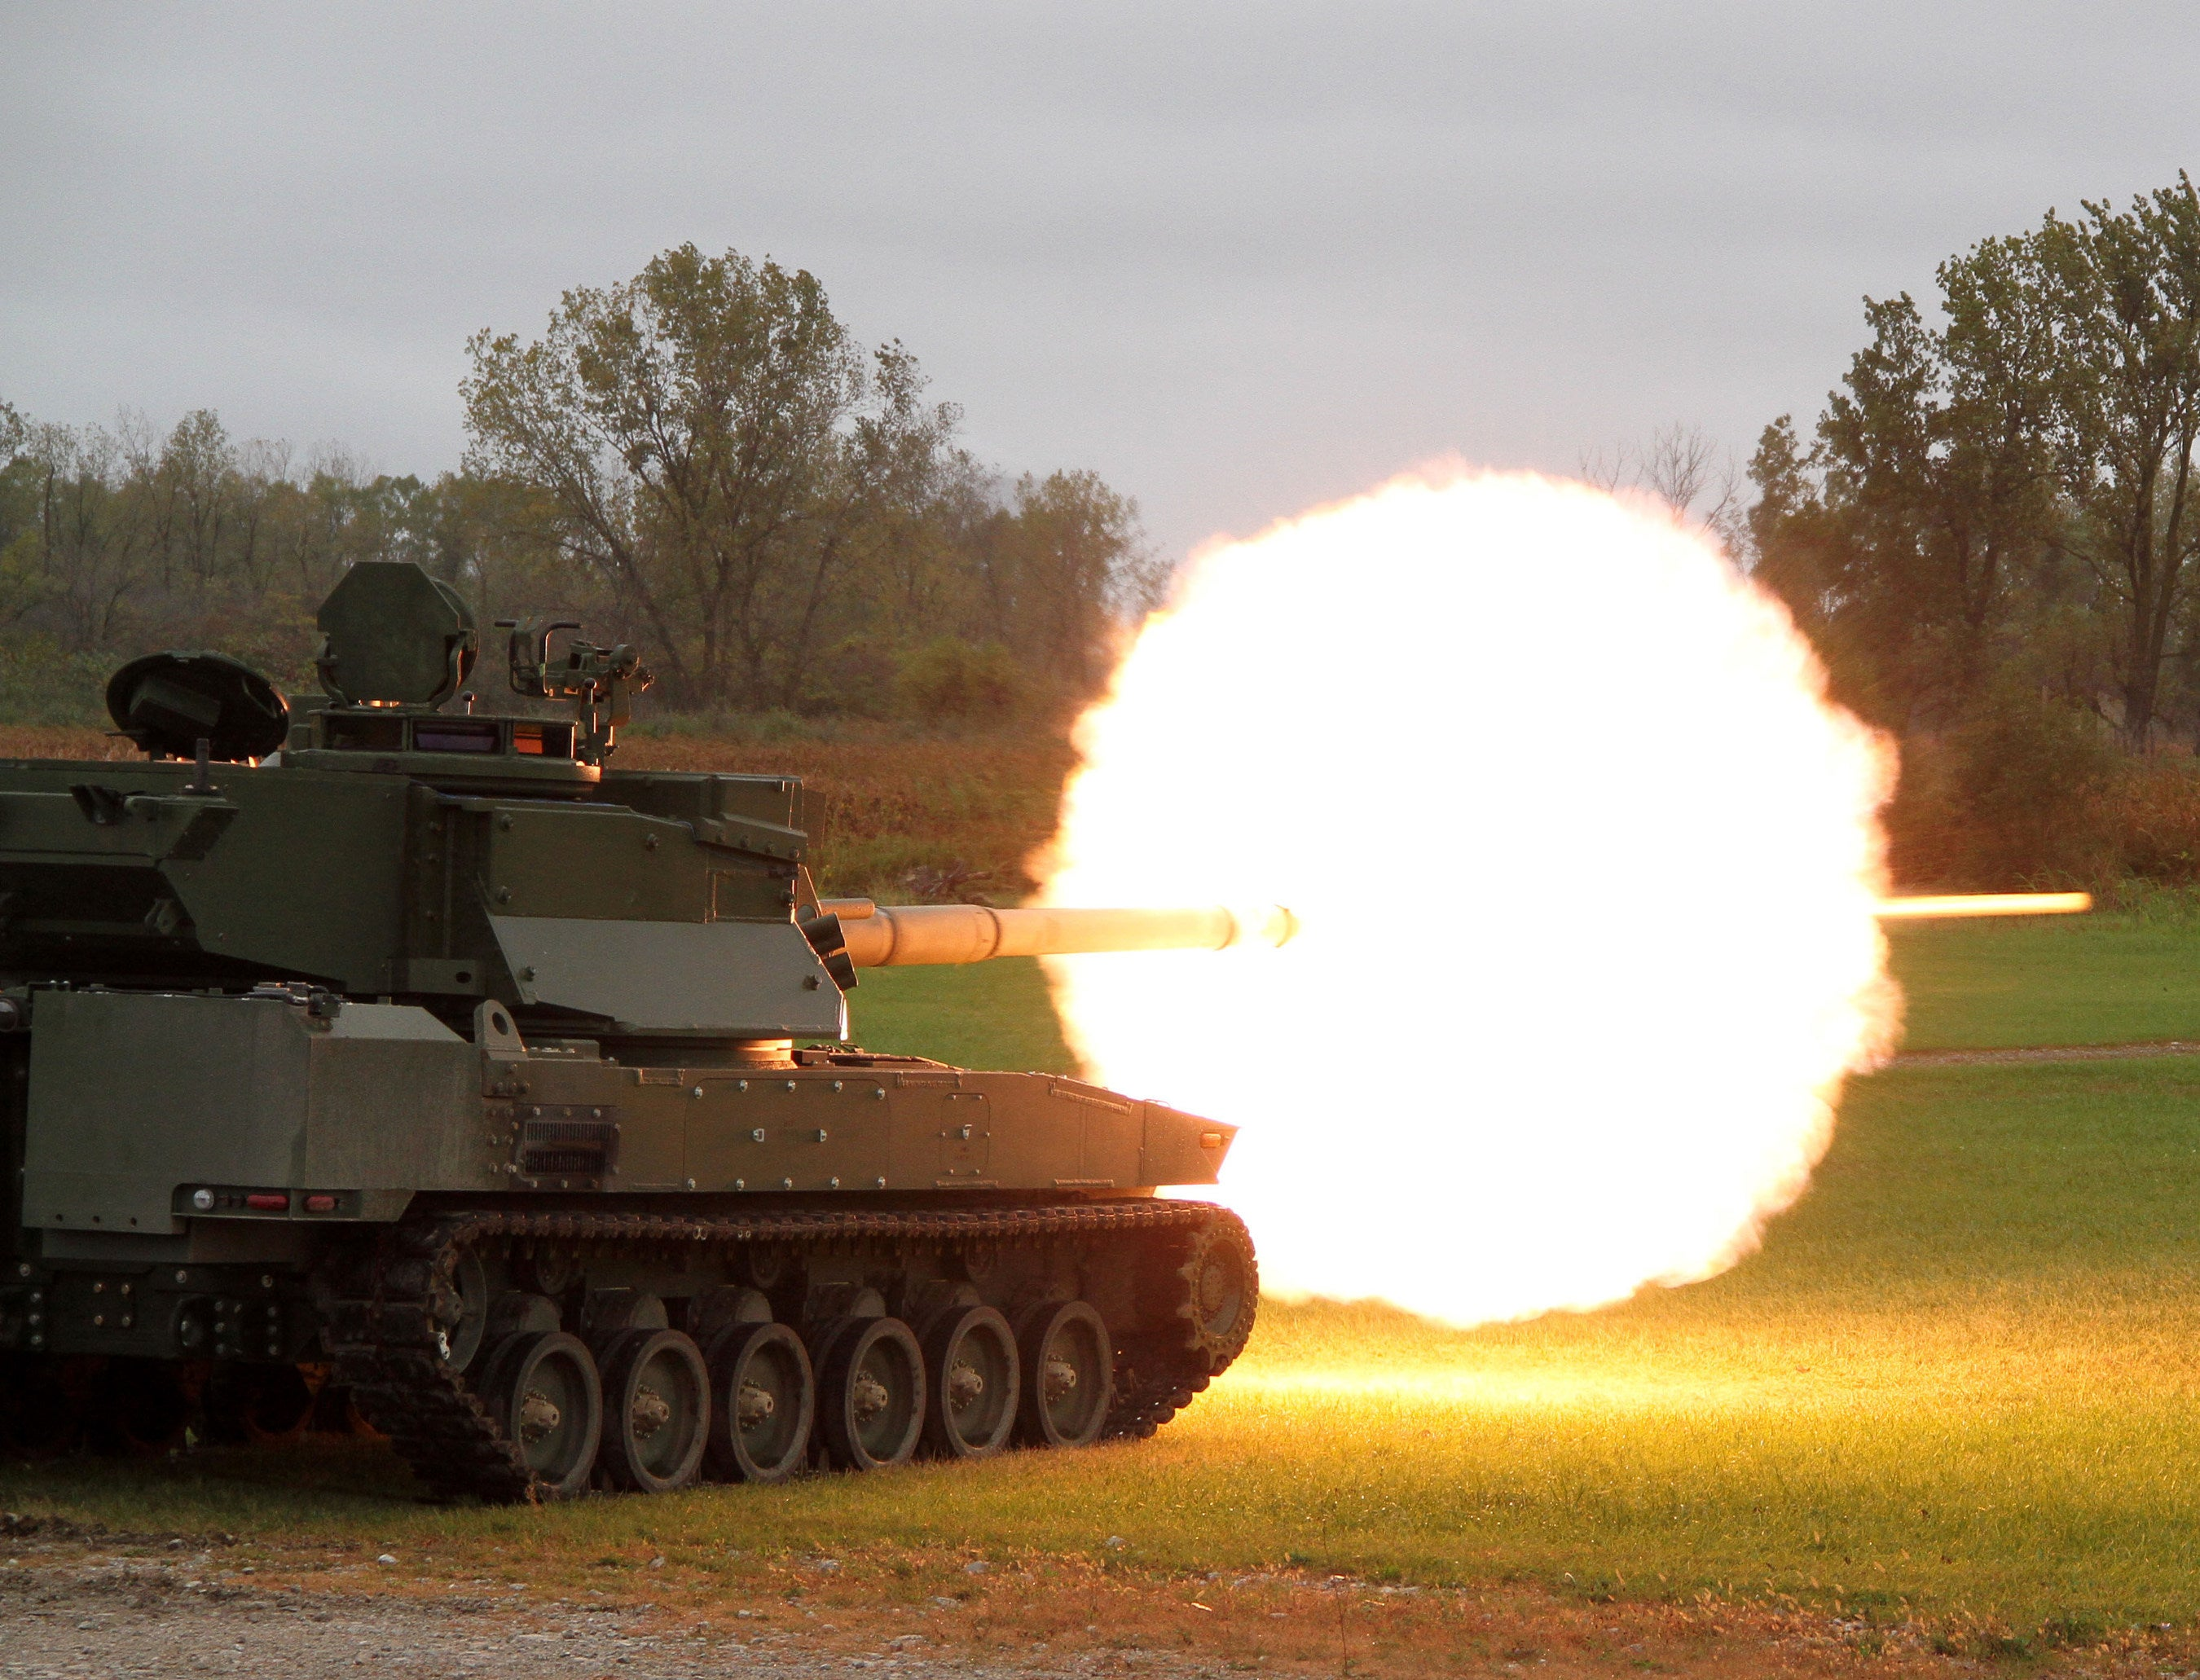 Here's Who Will Battle to Build the Army's New Light Tank